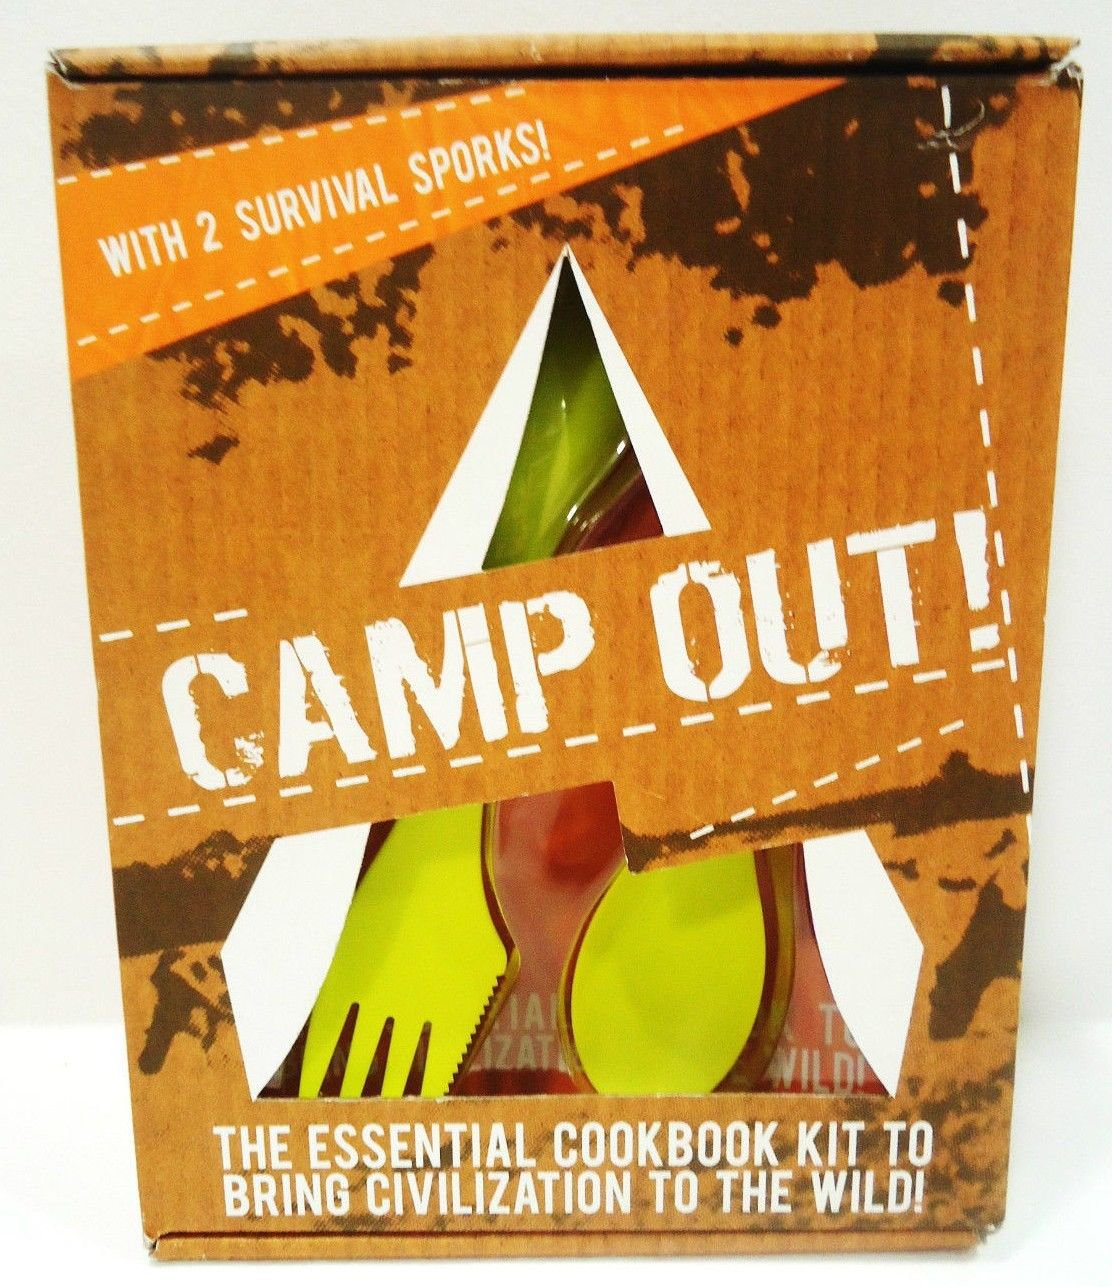 CAMP OUT - COOKBOOK - CAMPING - EQUIPMENT - SURVIVAL - SPORKS - NEW - RECIPES